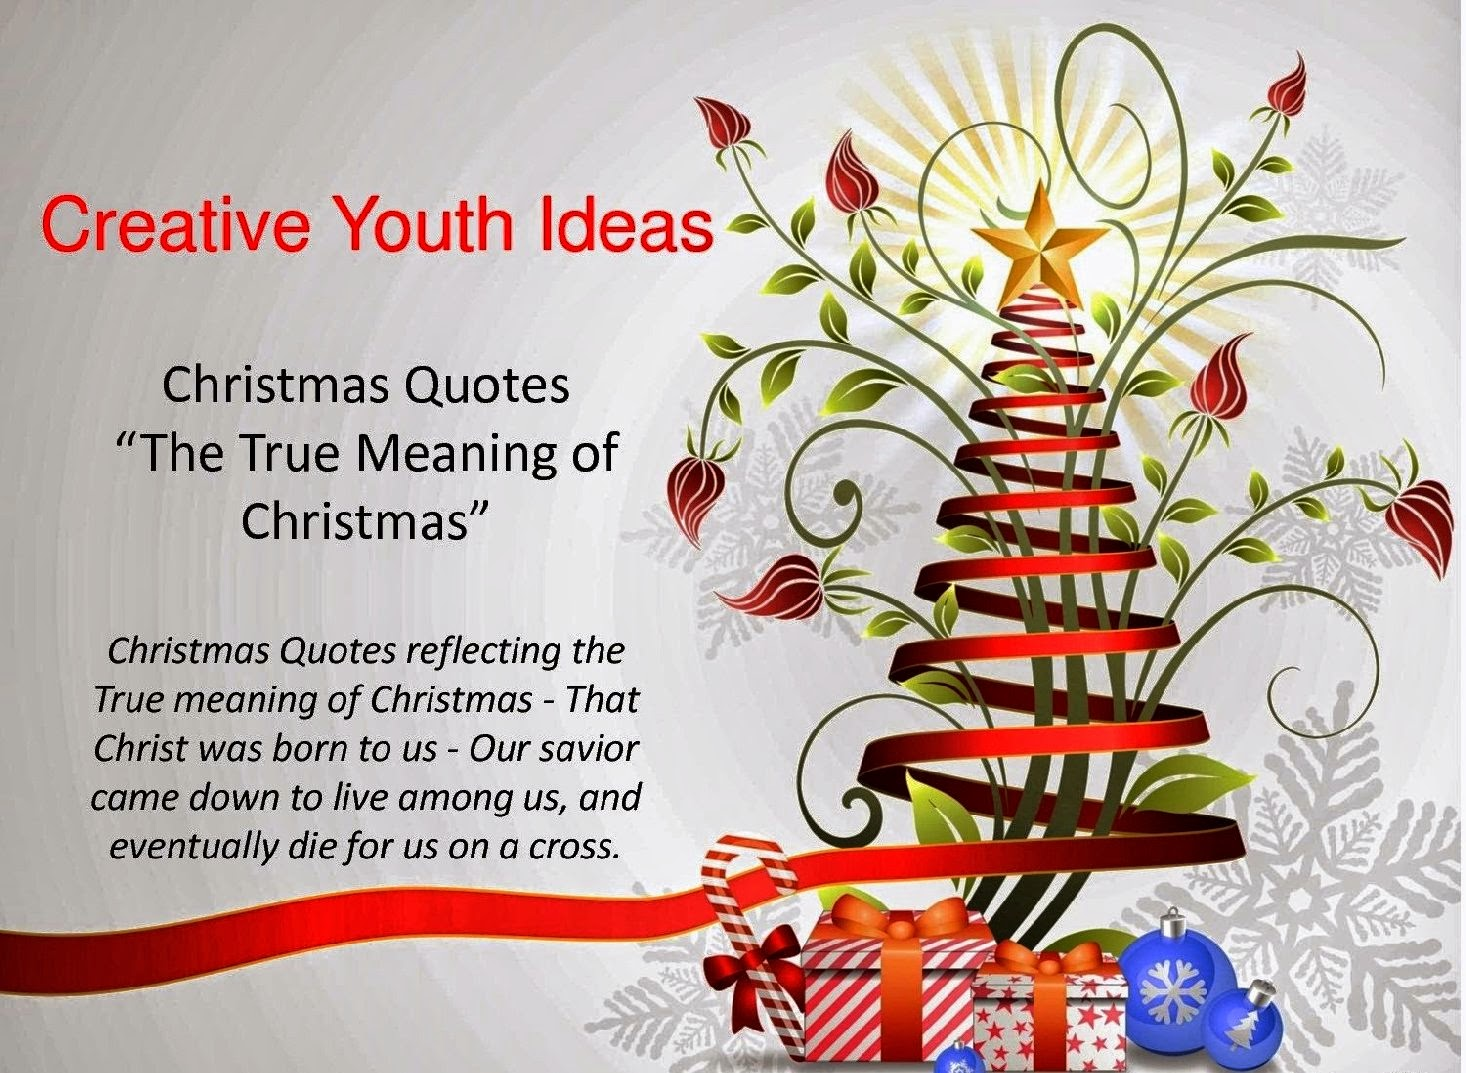 Christmas Quotes And Sayings: Merry Christmas Eve Quotes Wishes Cards Photos